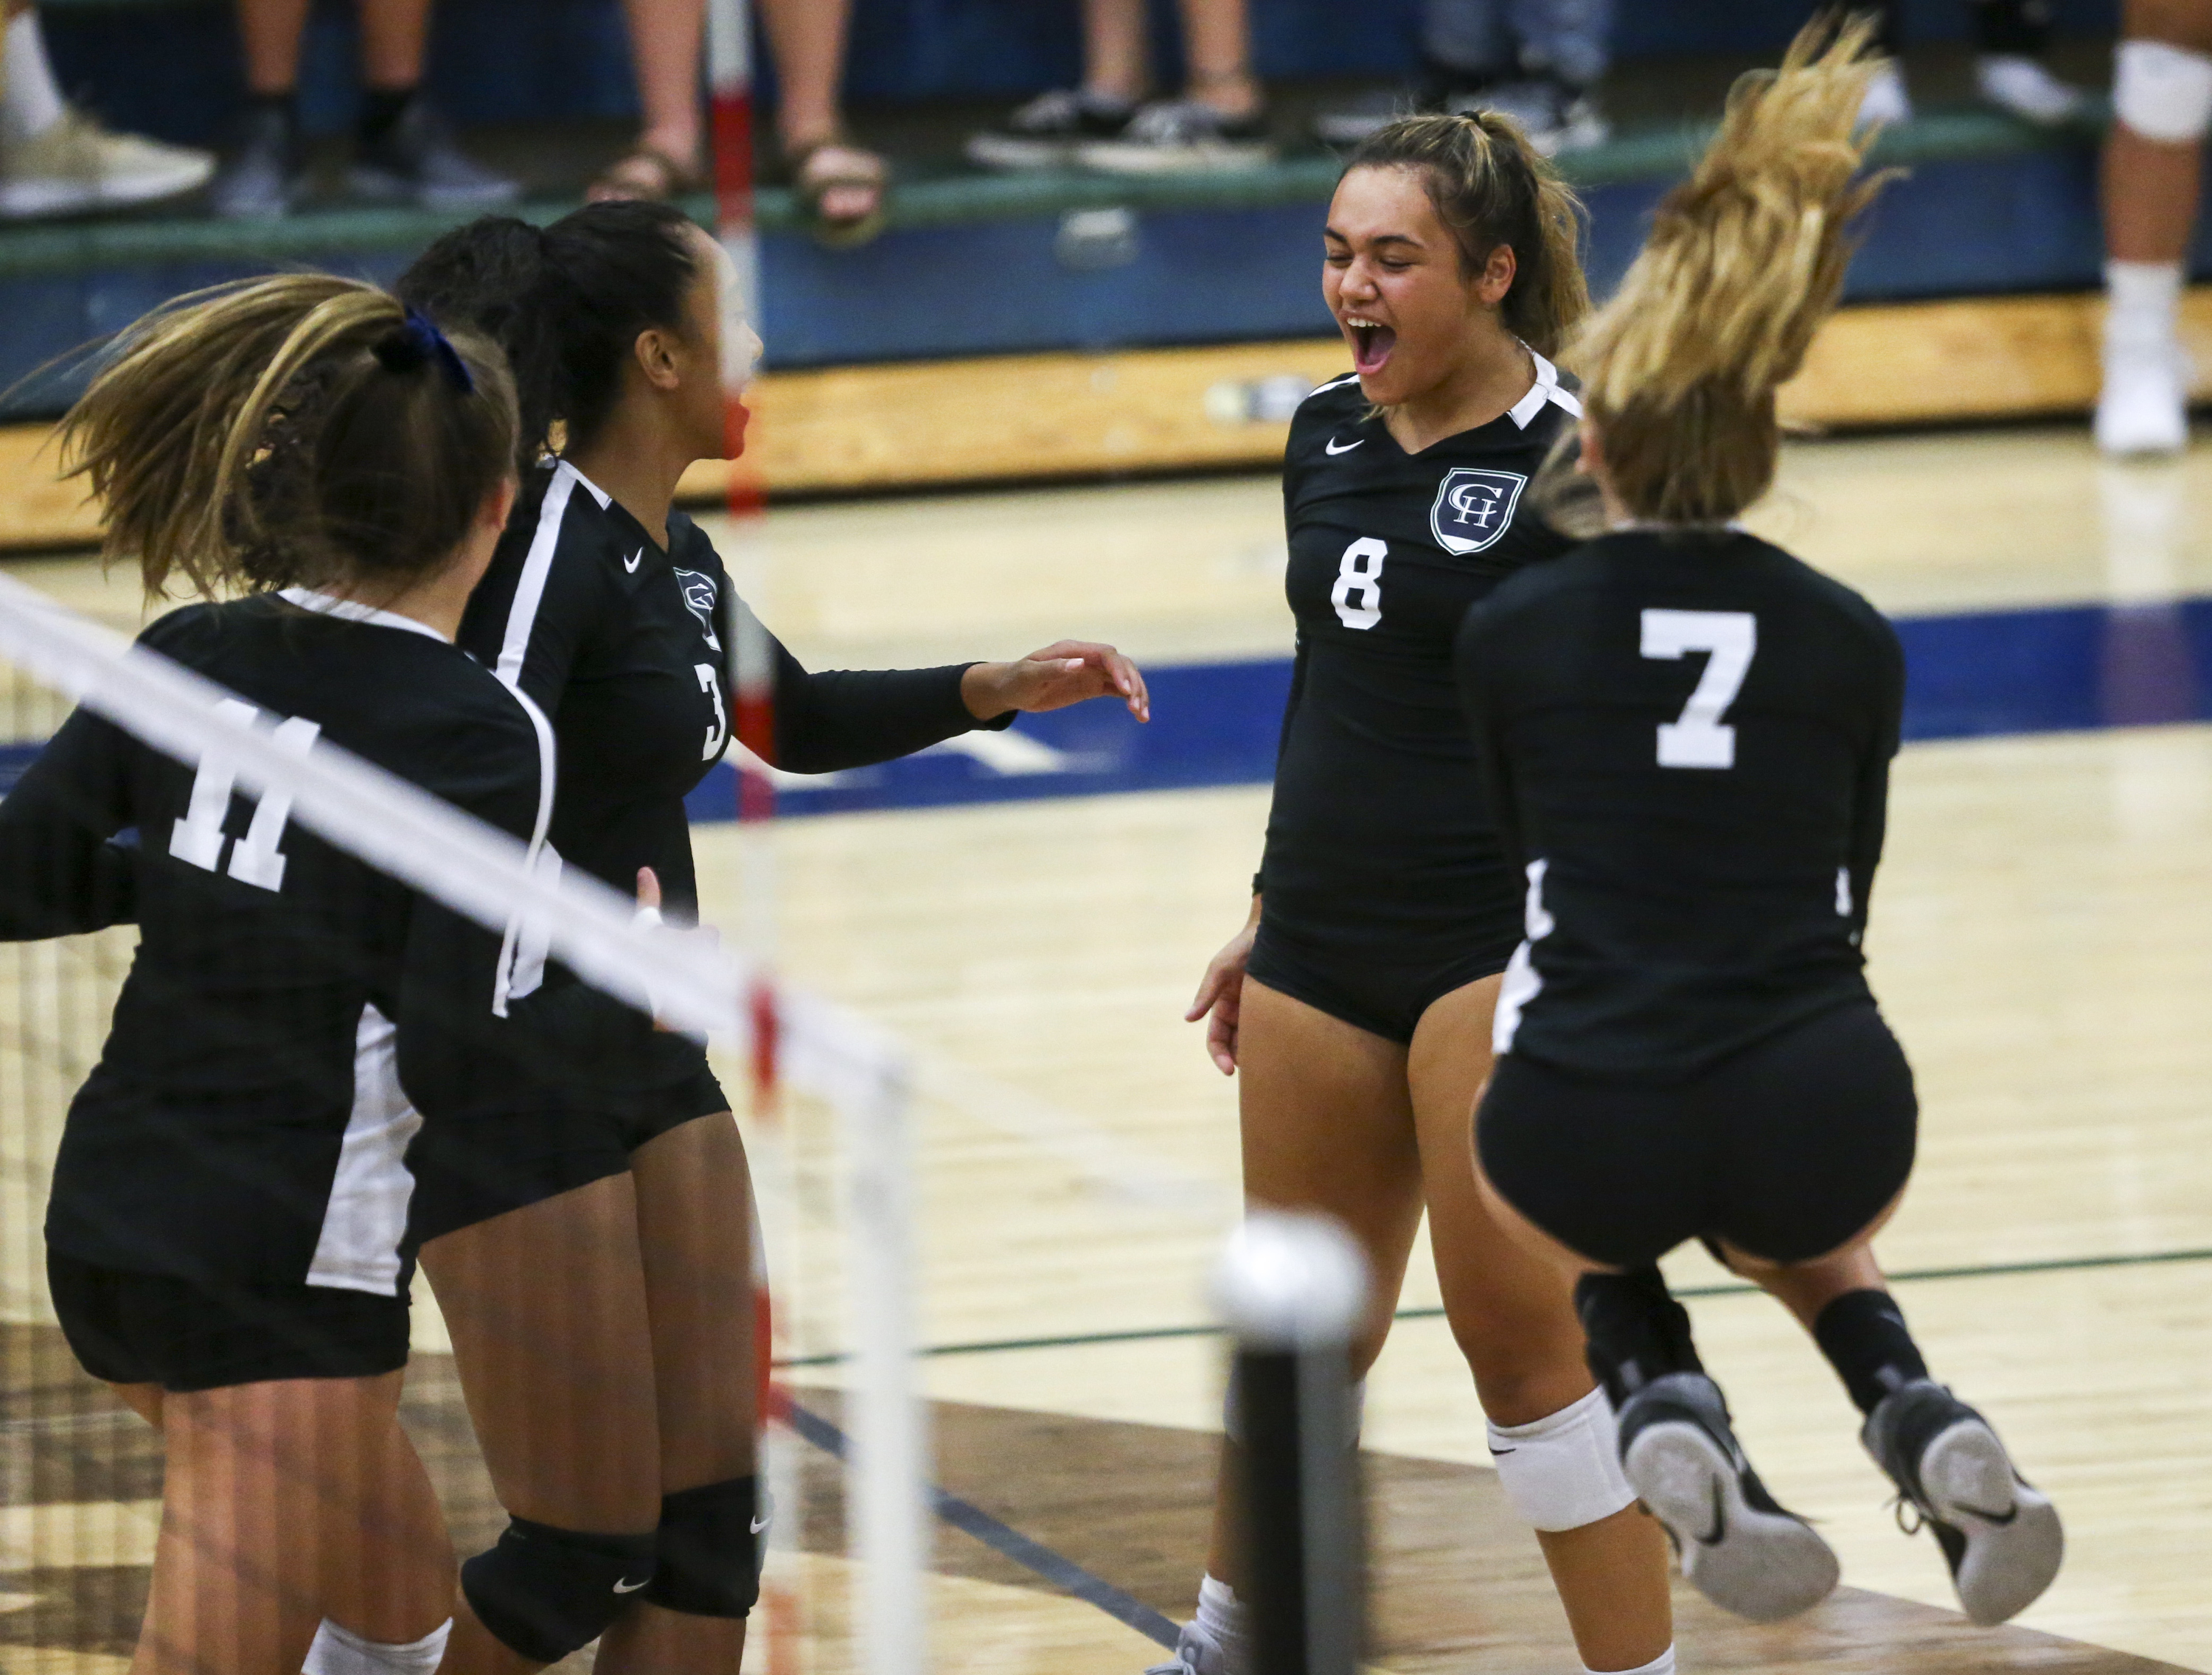 Copper Hills' Teniyah Leuluai (8) celebrates with her teammates after they score a point in the second set during a match against Springville High School at Copper Hills High School in West Jordan on Thursday, Aug. 22, 2019. Copper Hills won the match in three straight sets.